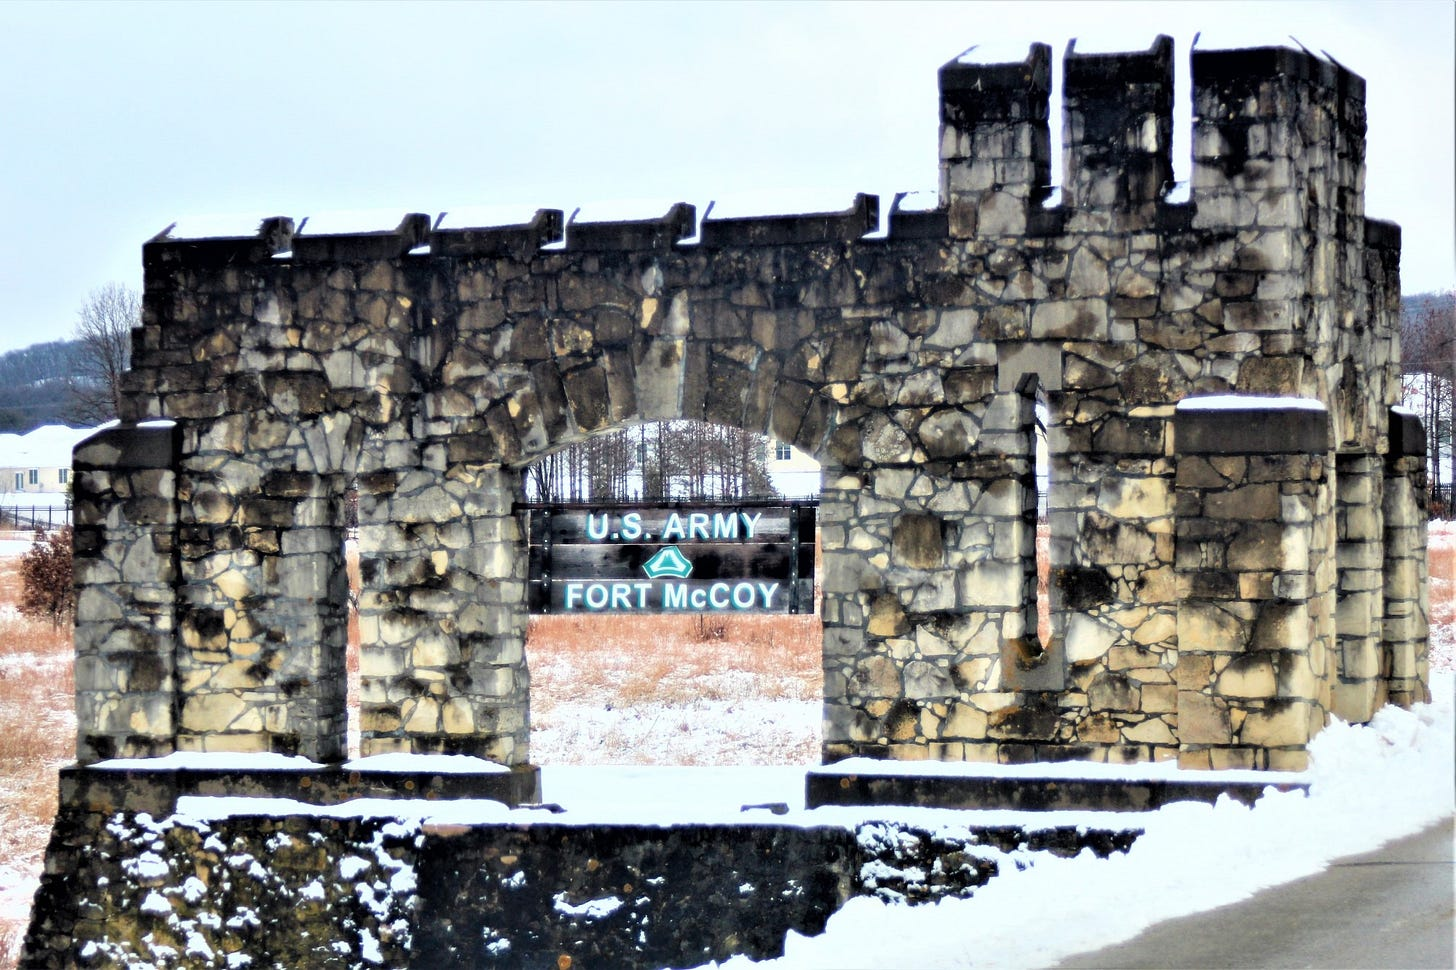 An old stone fort gate